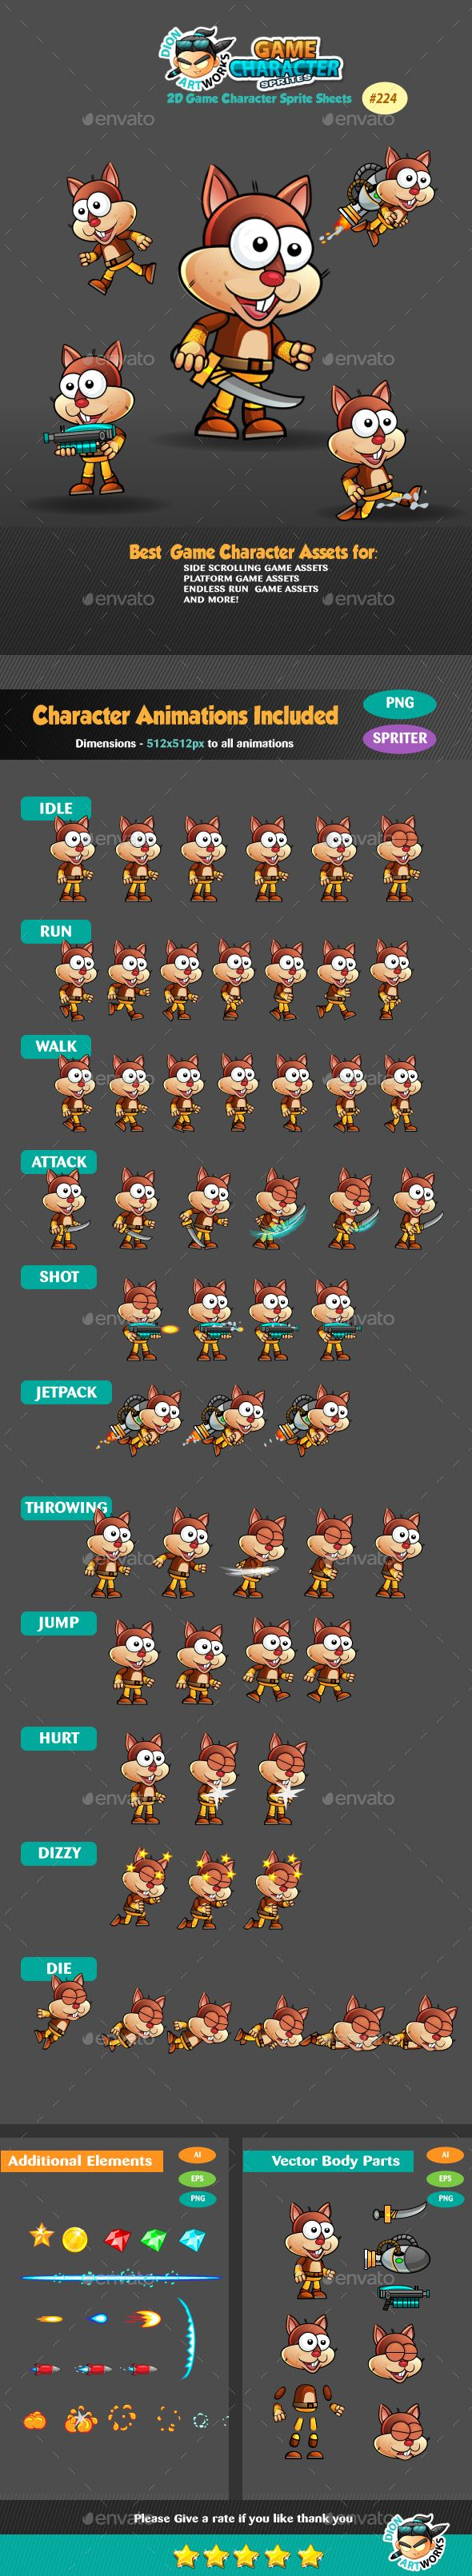 Squirrel Warrior Game Character Sprites 224 Download here: https://graphicriver.net/item/squirrel-warrior-game-character-sprites-224/16446996?ref=KlitVogli